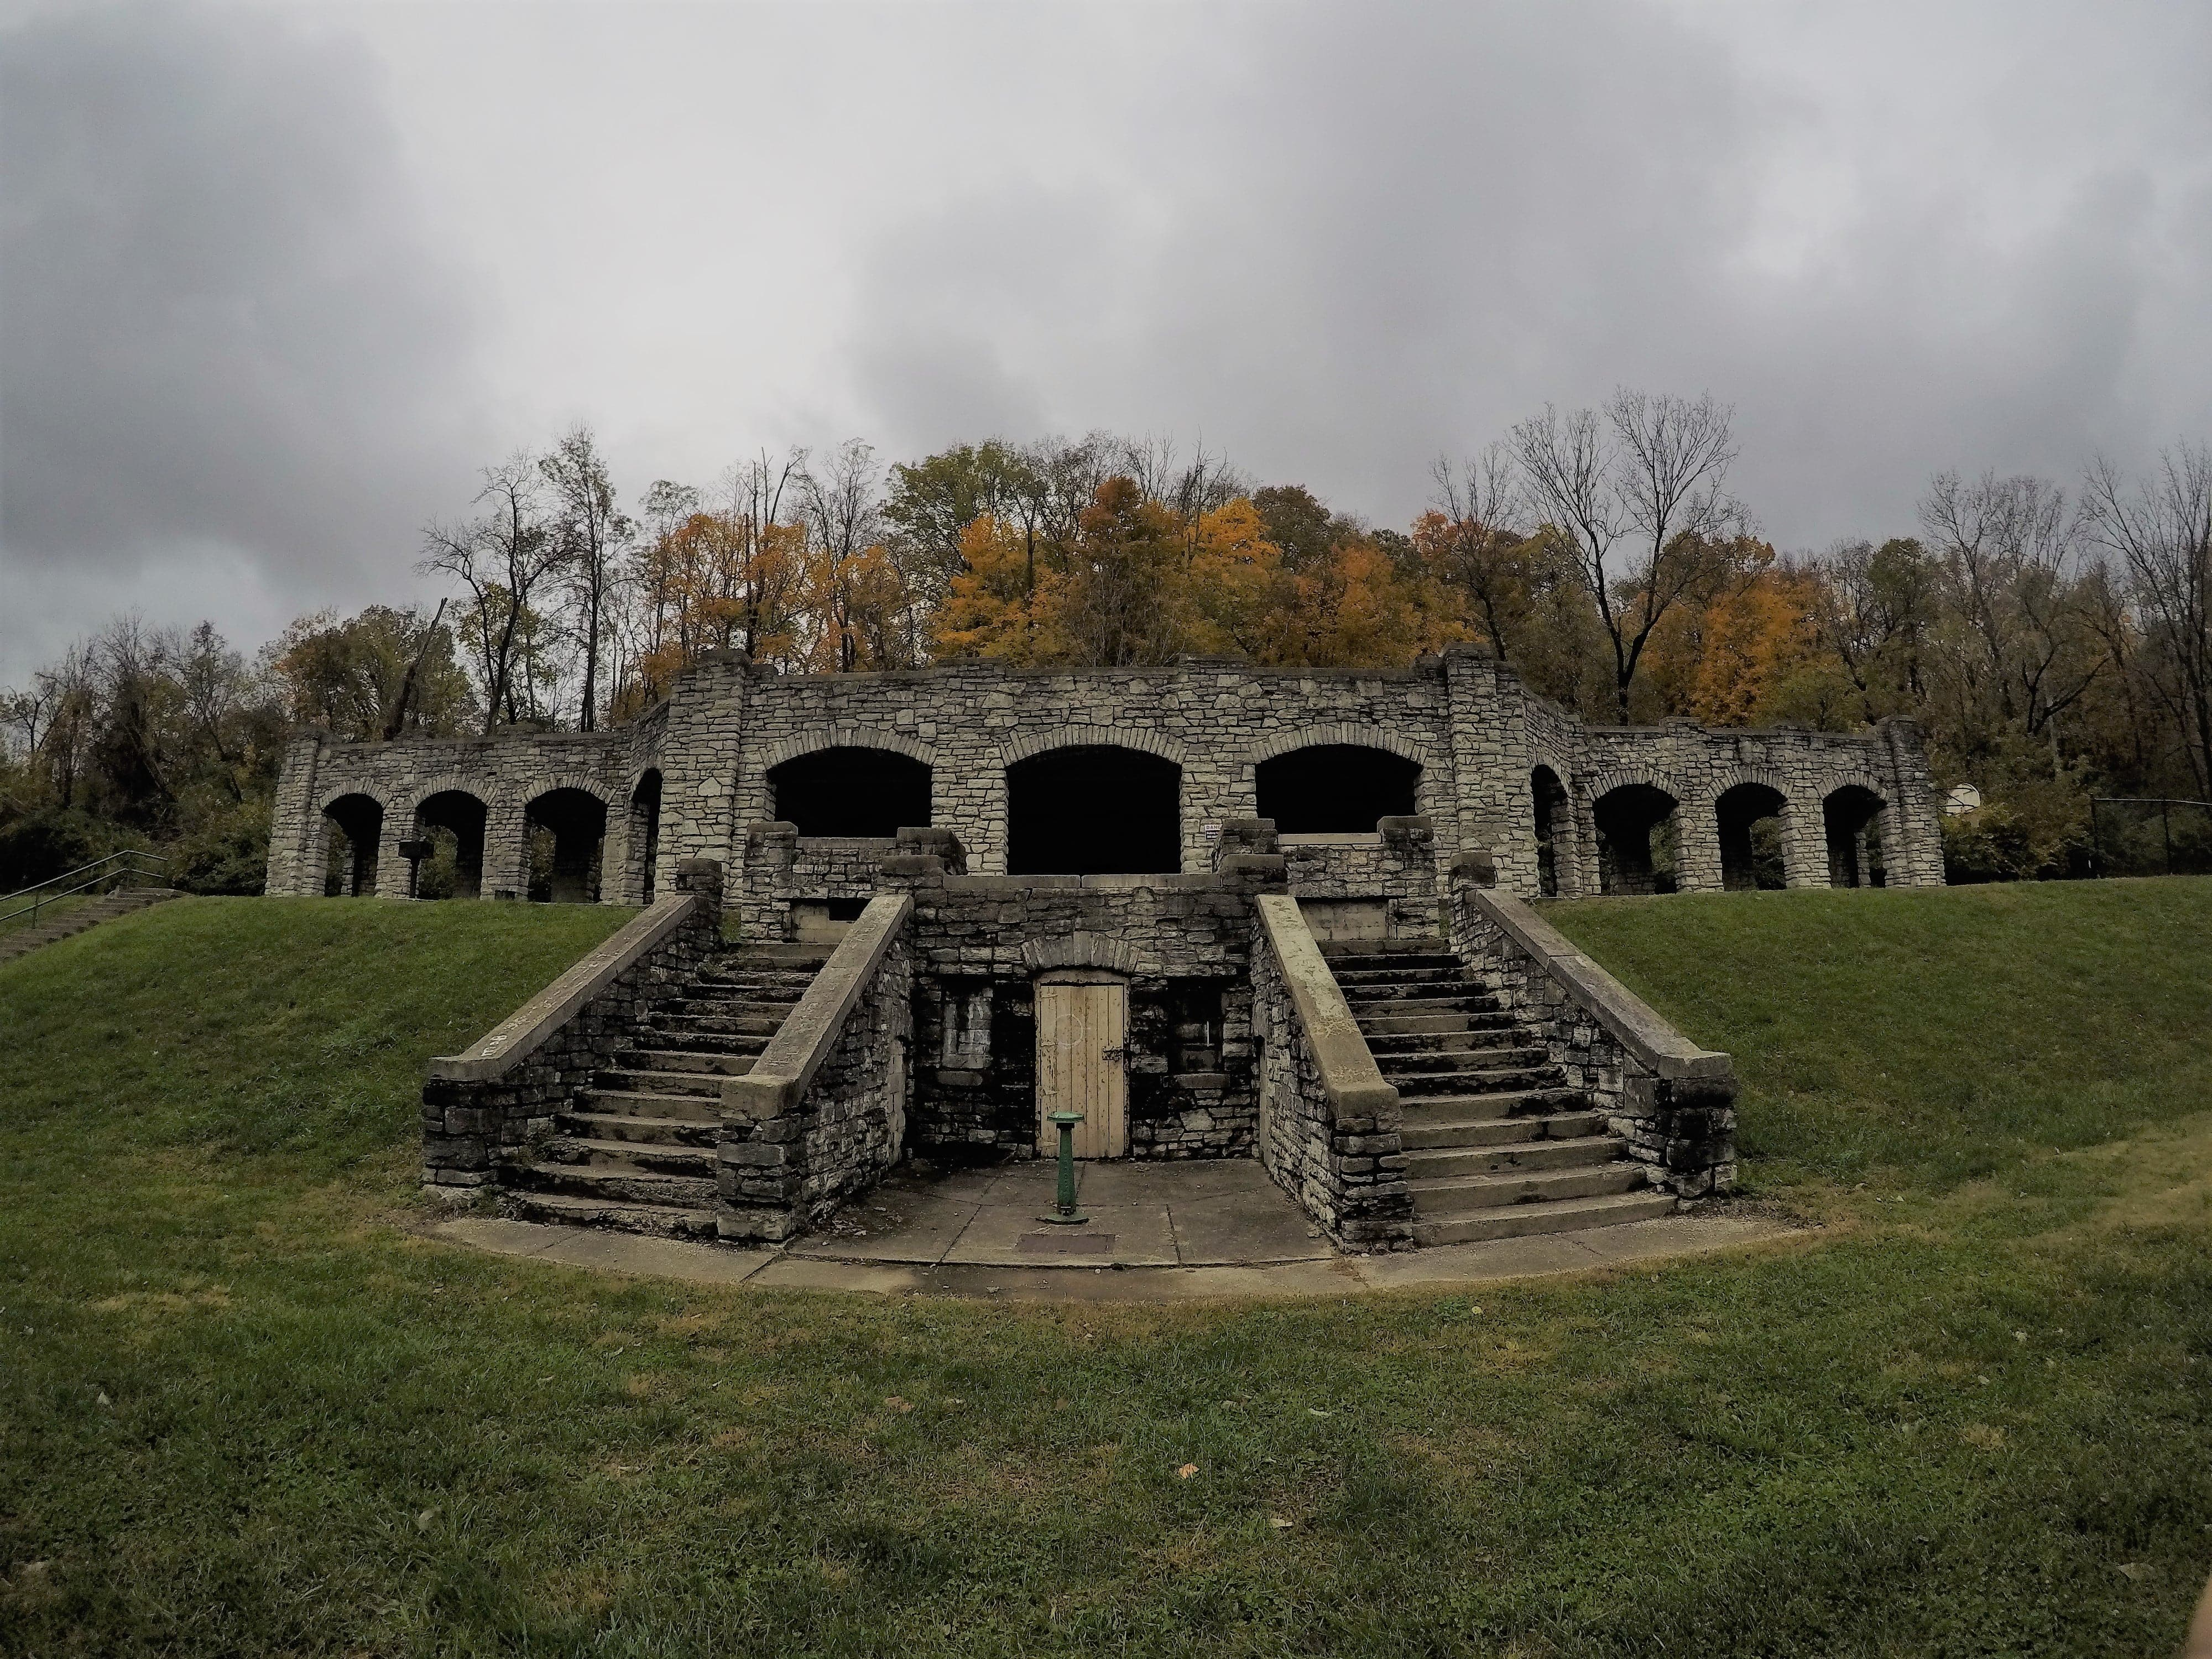 This limestone structure built in 1918 once held changing rooms for the two pools which flanked the structure.